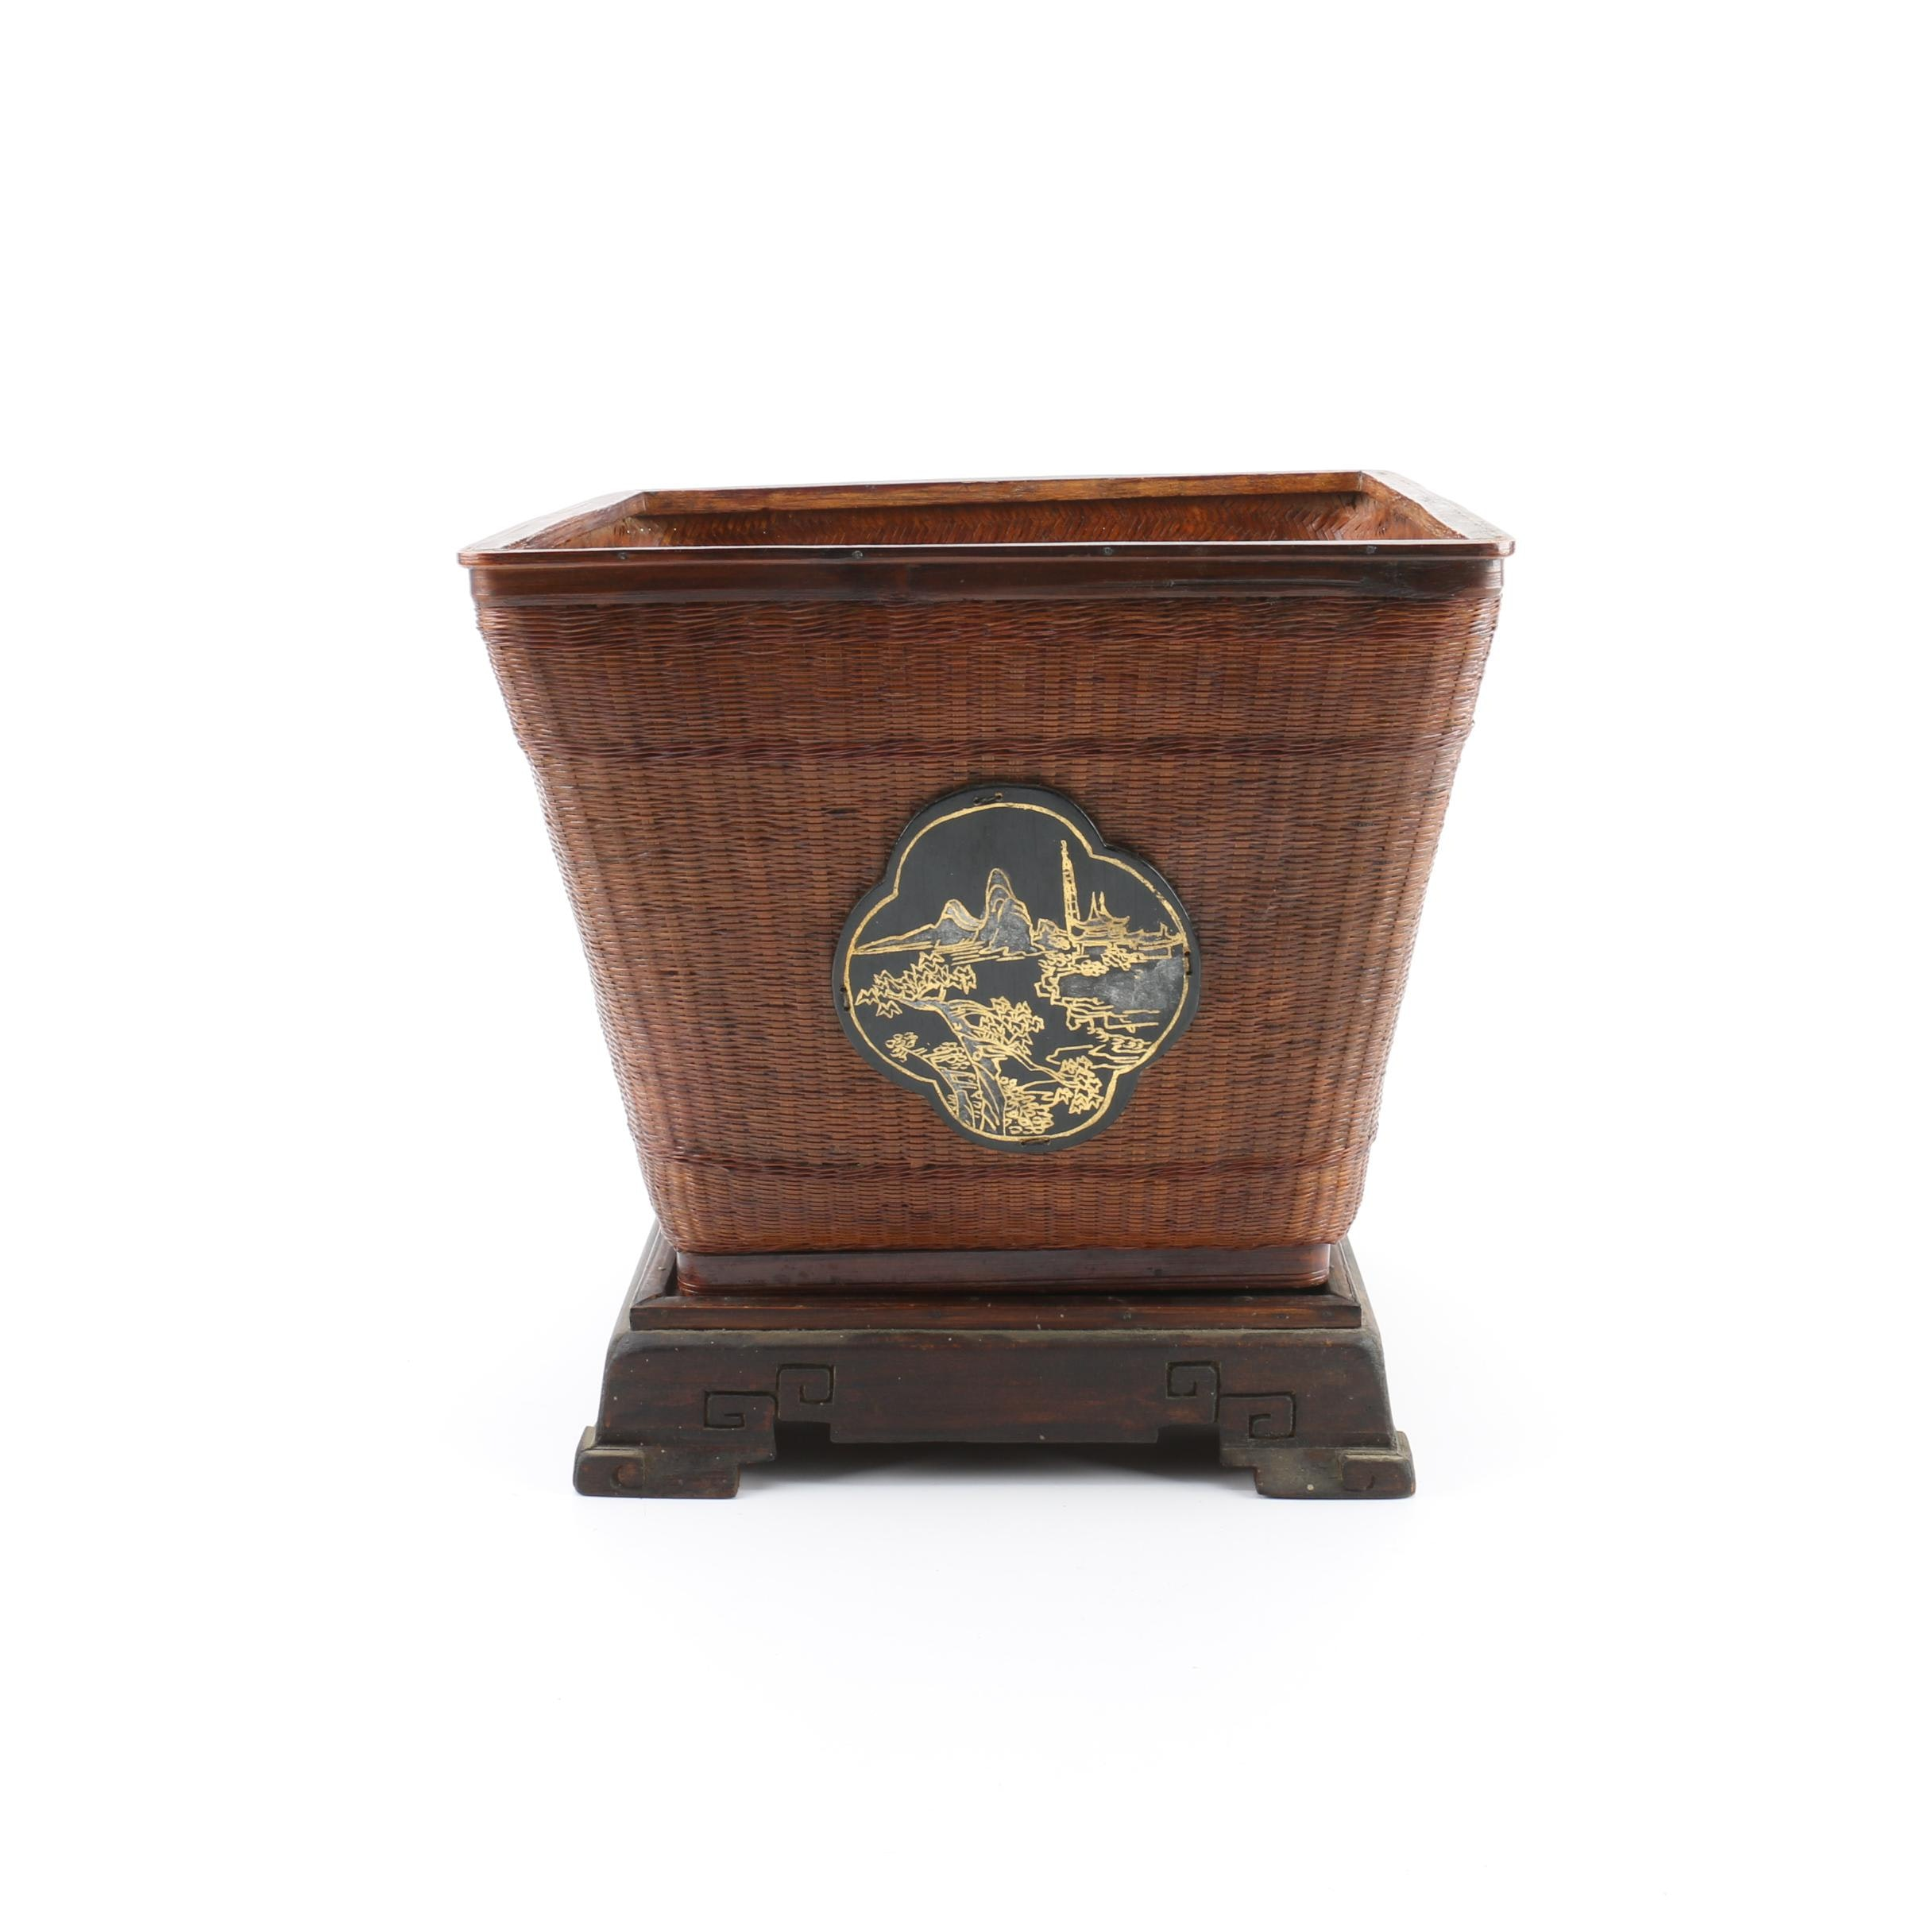 Handwoven Chinese Square Basket with Hand-Painted Lacquer Medallion and Stand